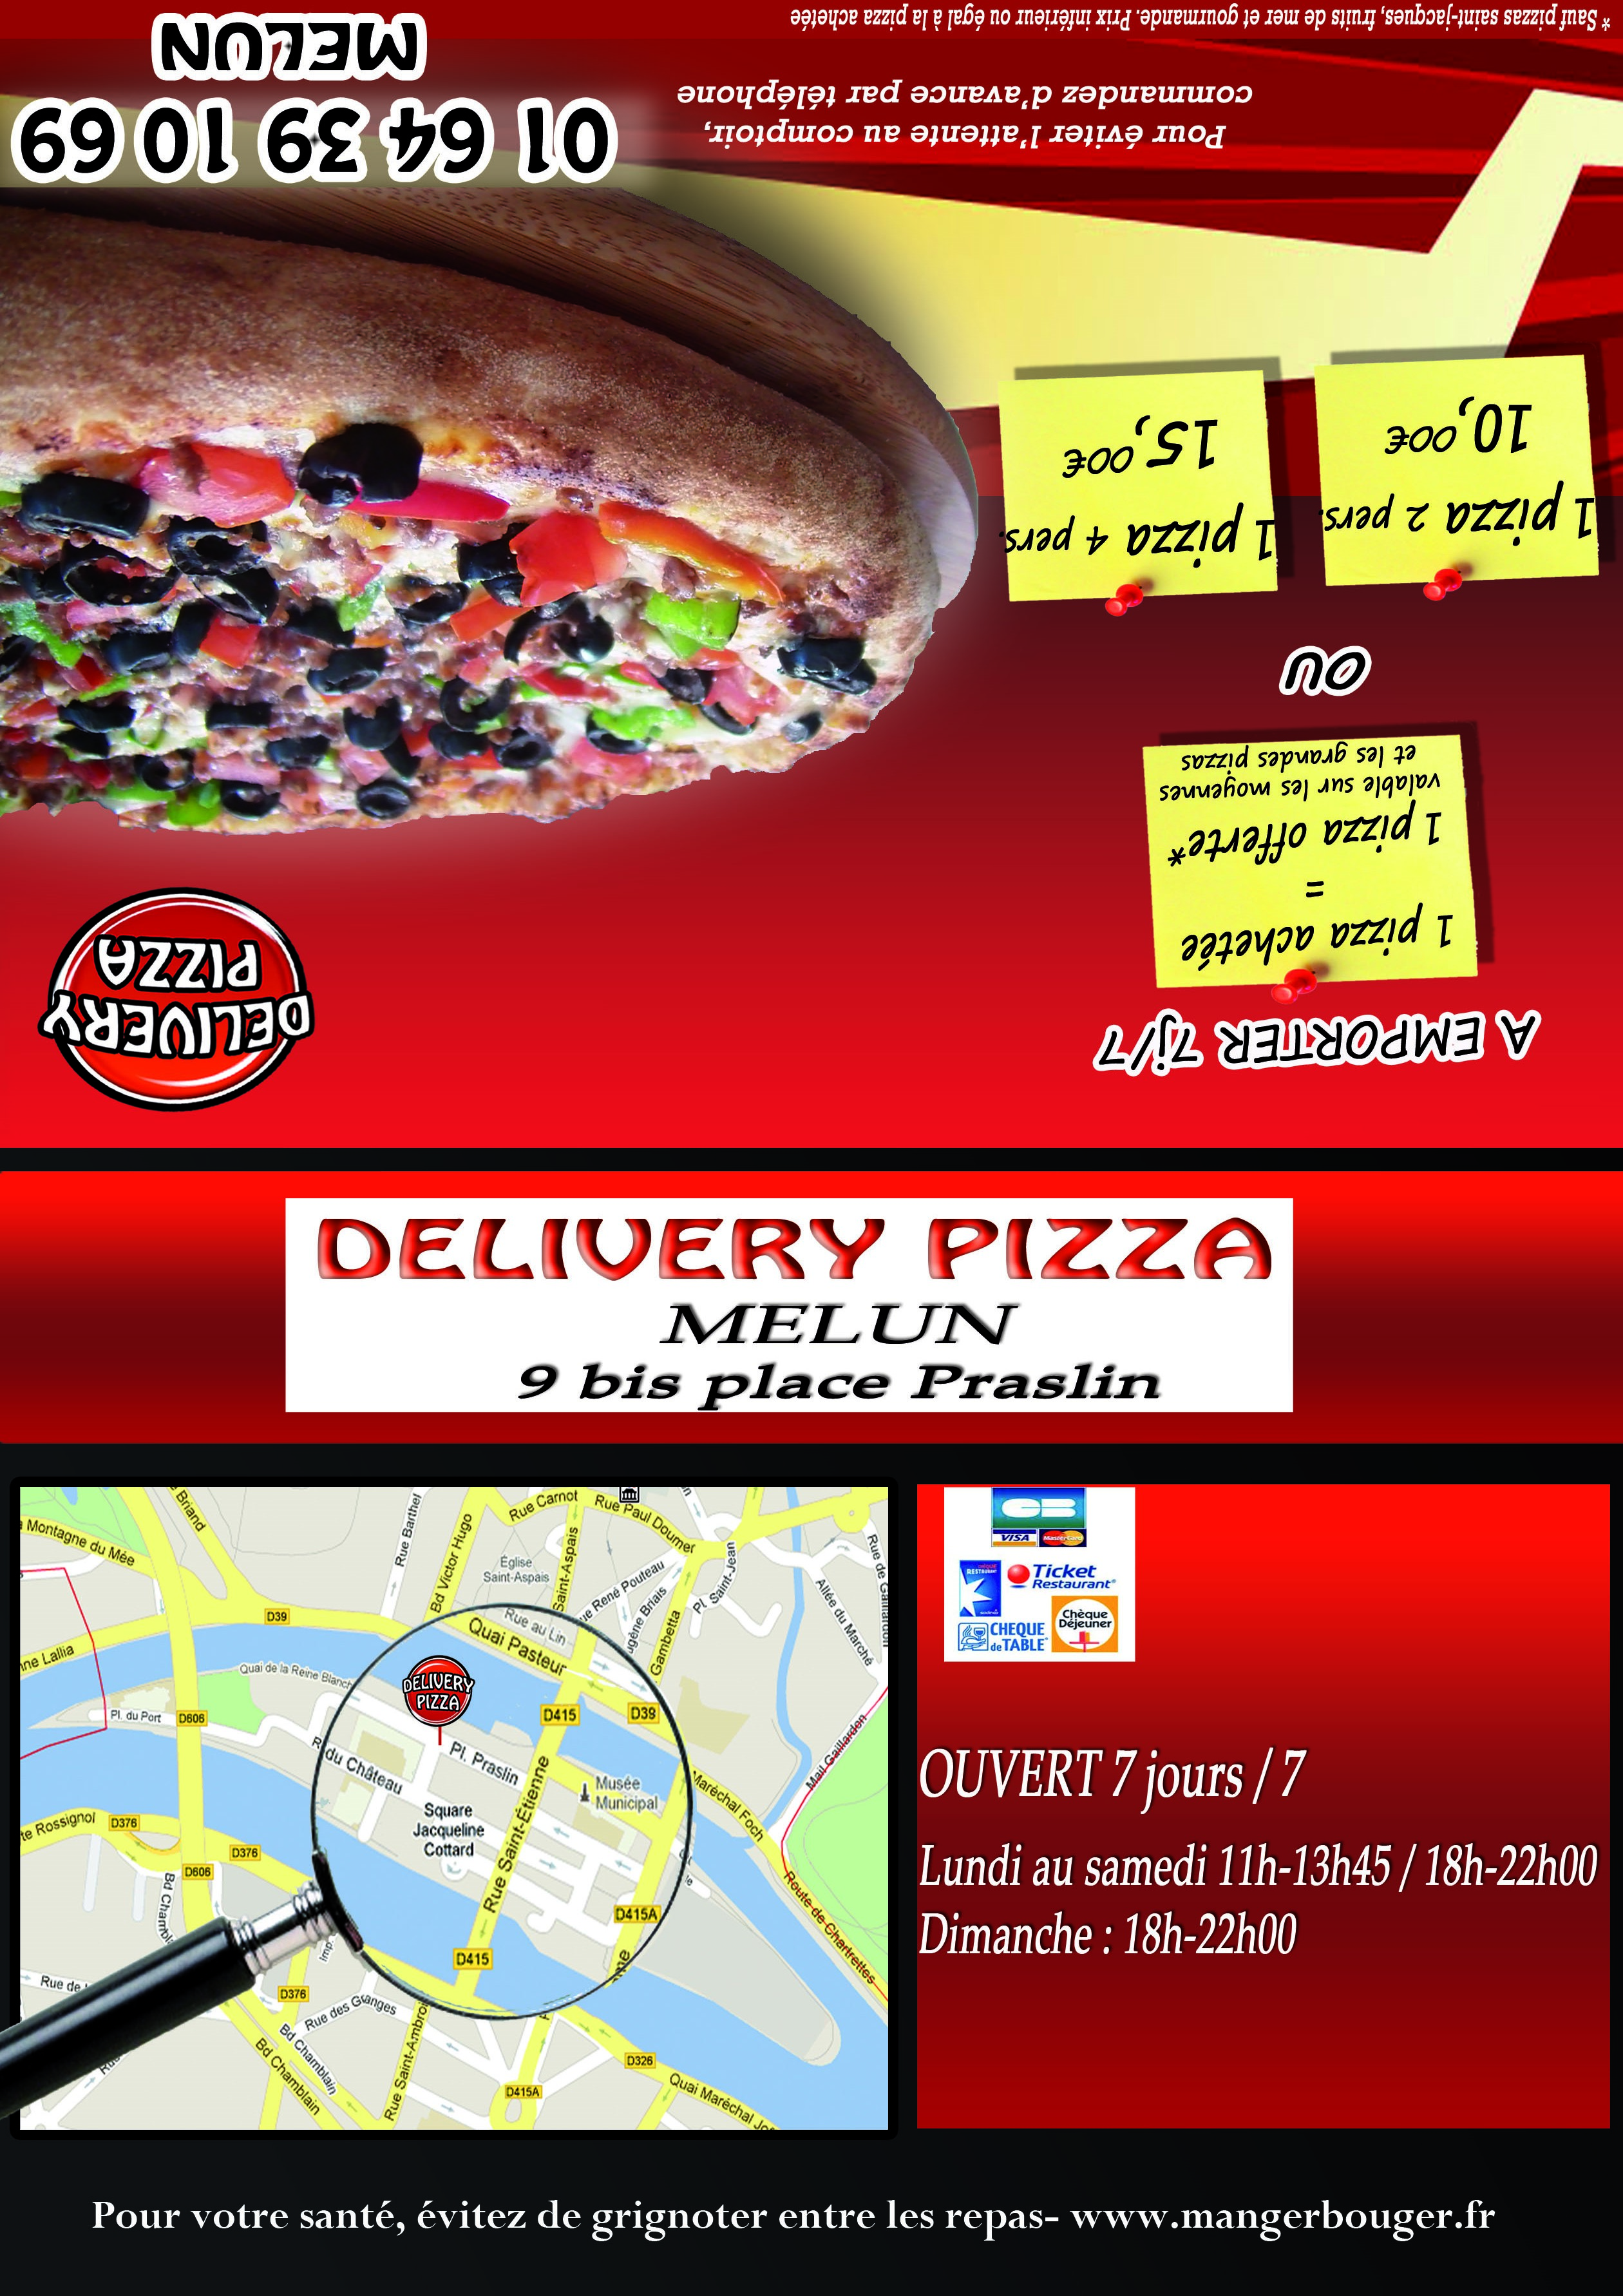 Delivery Pizza à Melun